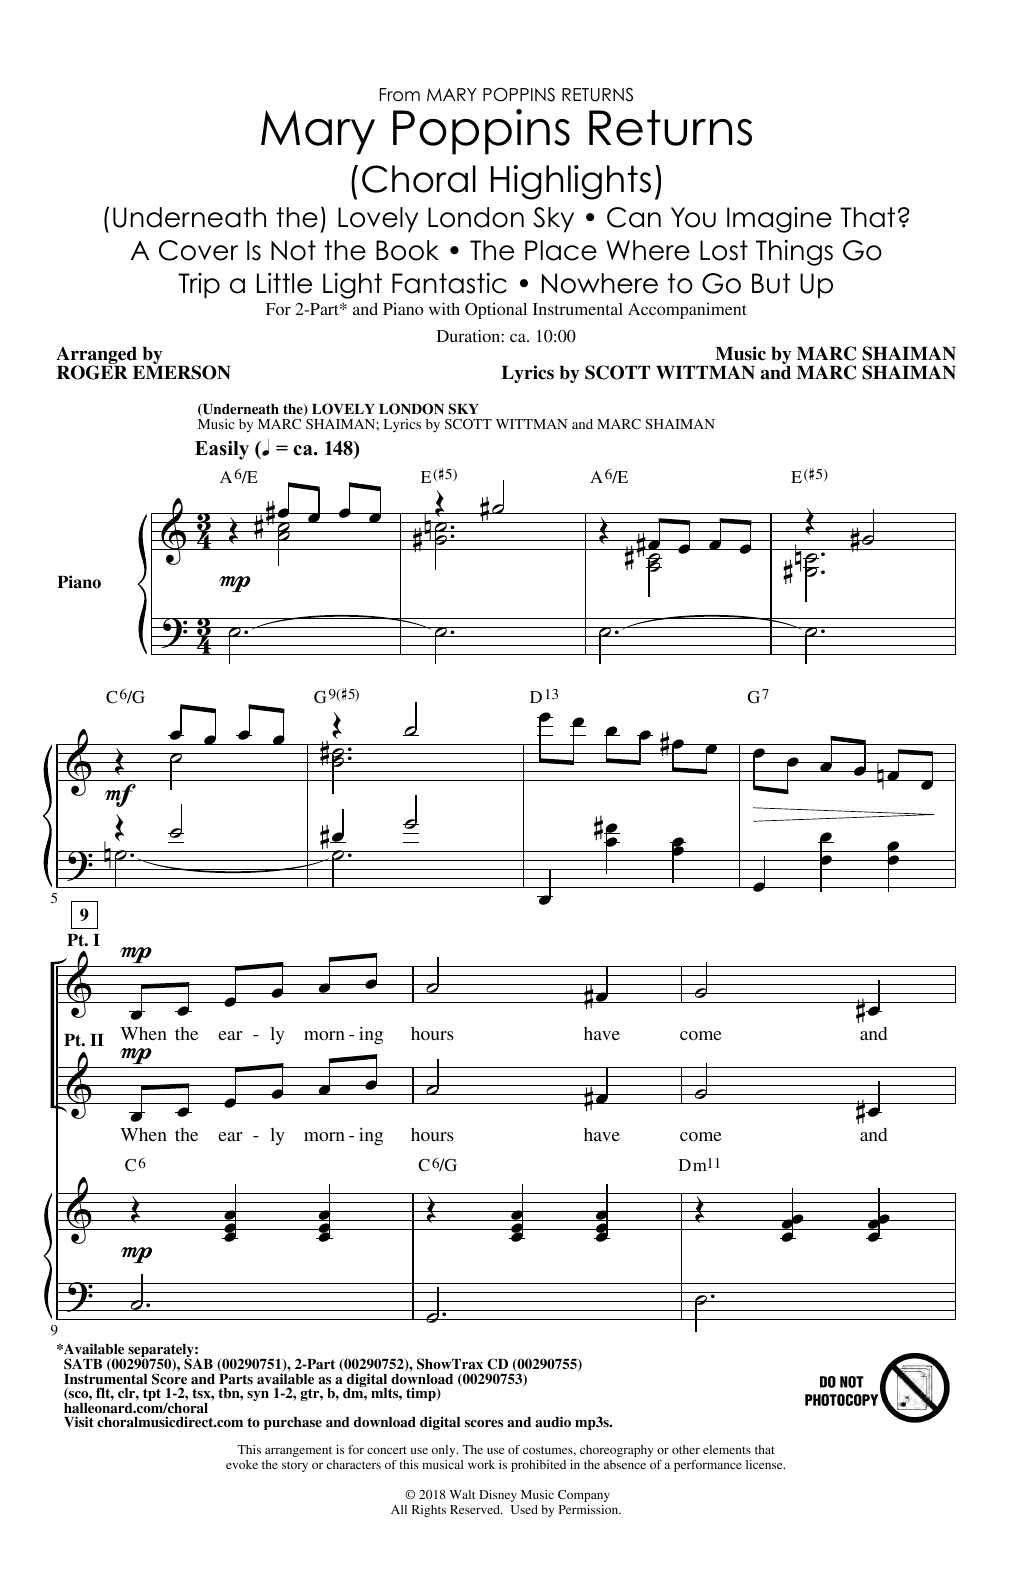 Mary Poppins Returns (Choral Highlights) (arr. Roger Emerson) Sheet Music